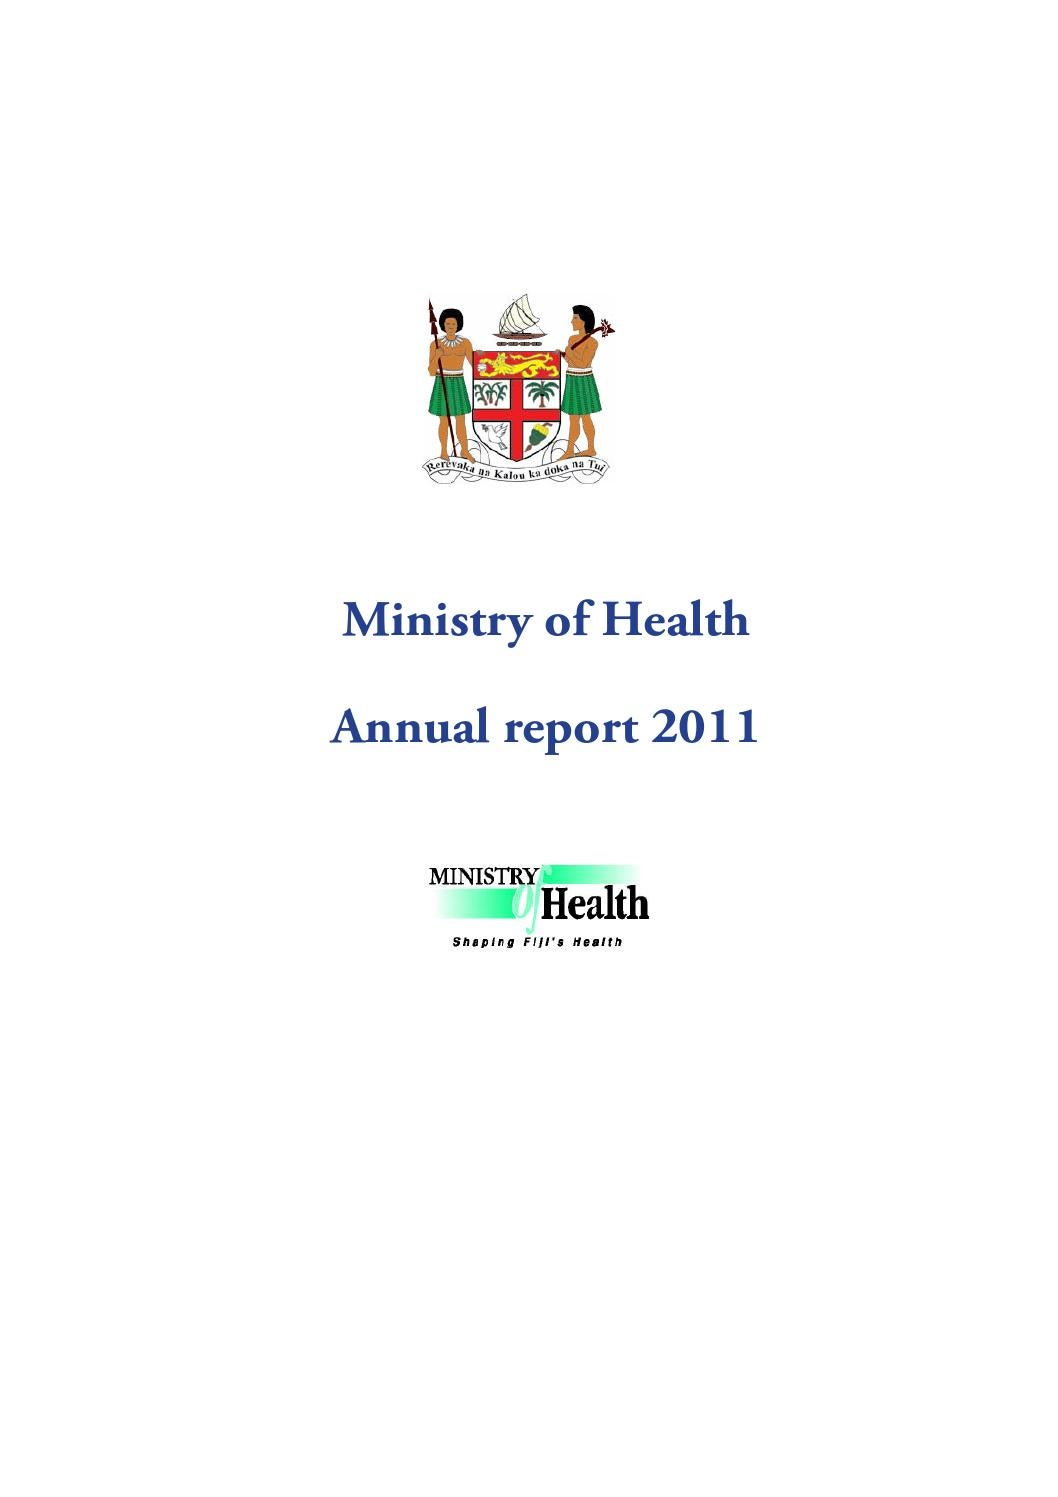 Annual Report 2011 by Ministry of Health - Fiji Islands - issuu